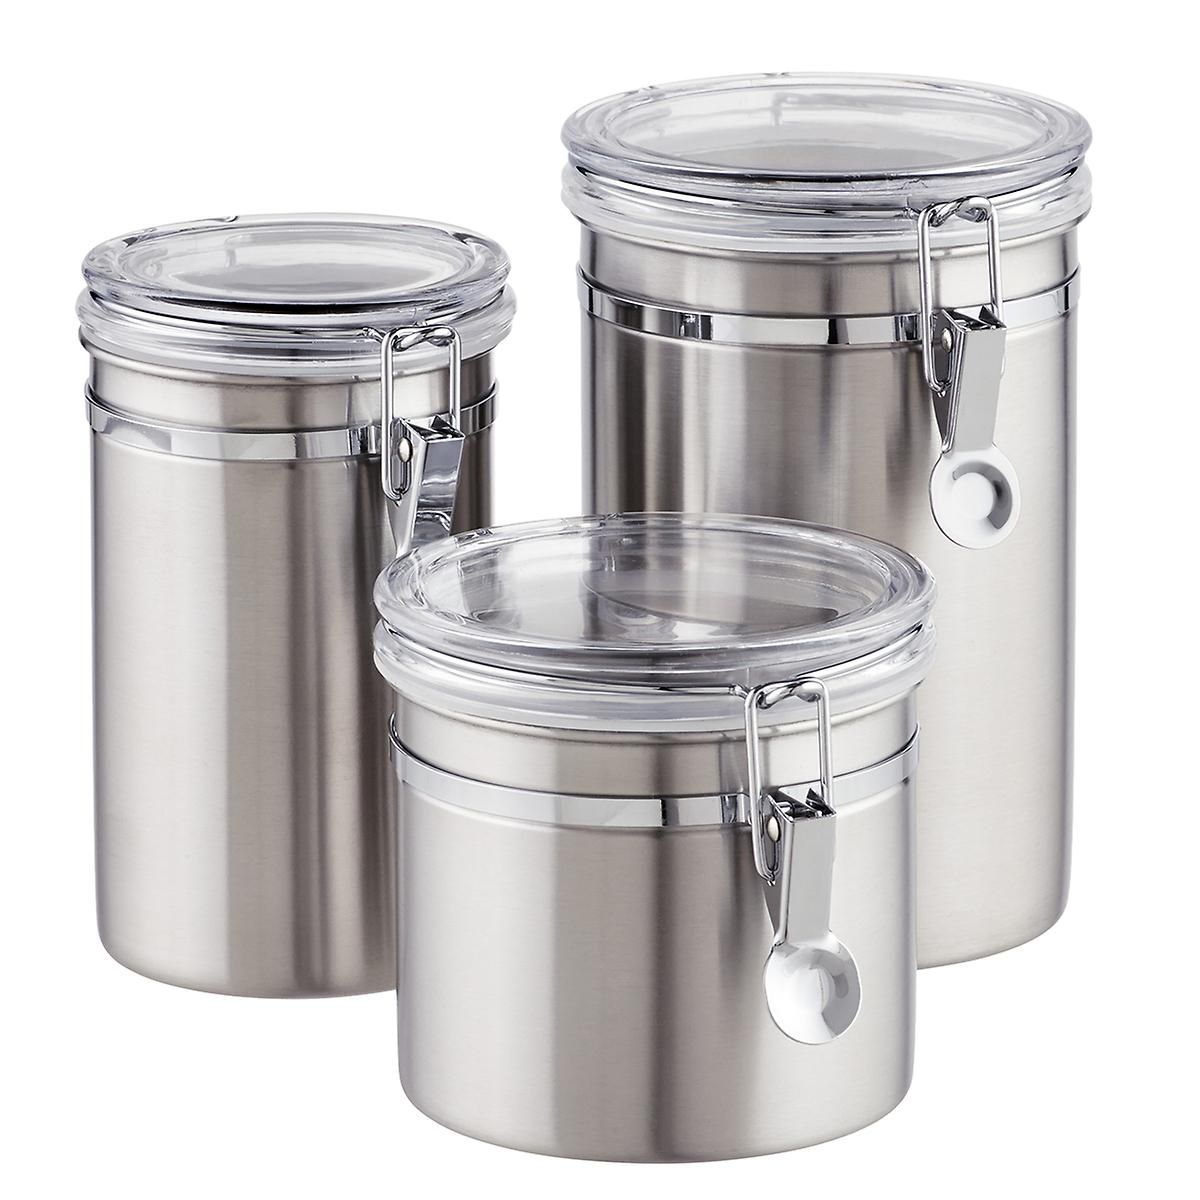 Stainless Steel Canisters Brushed Stainless Steel Canisters The Container Stor Stainless Steel Canister Set Kitchen Canister Sets Stainless Steel Canisters